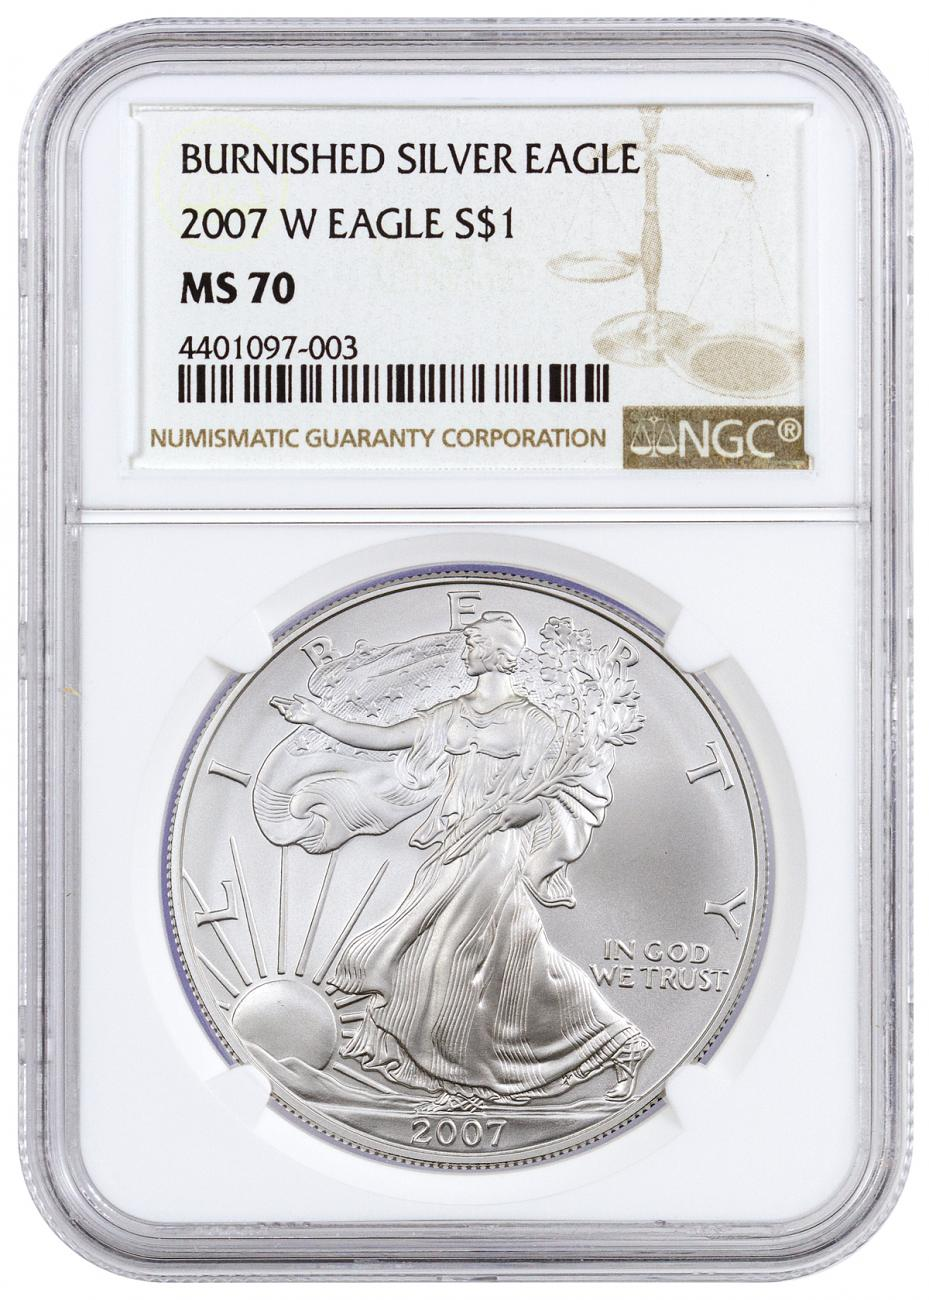 2007 W Burnished Silver Eagle Ngc Ms70 Moderncoinmart